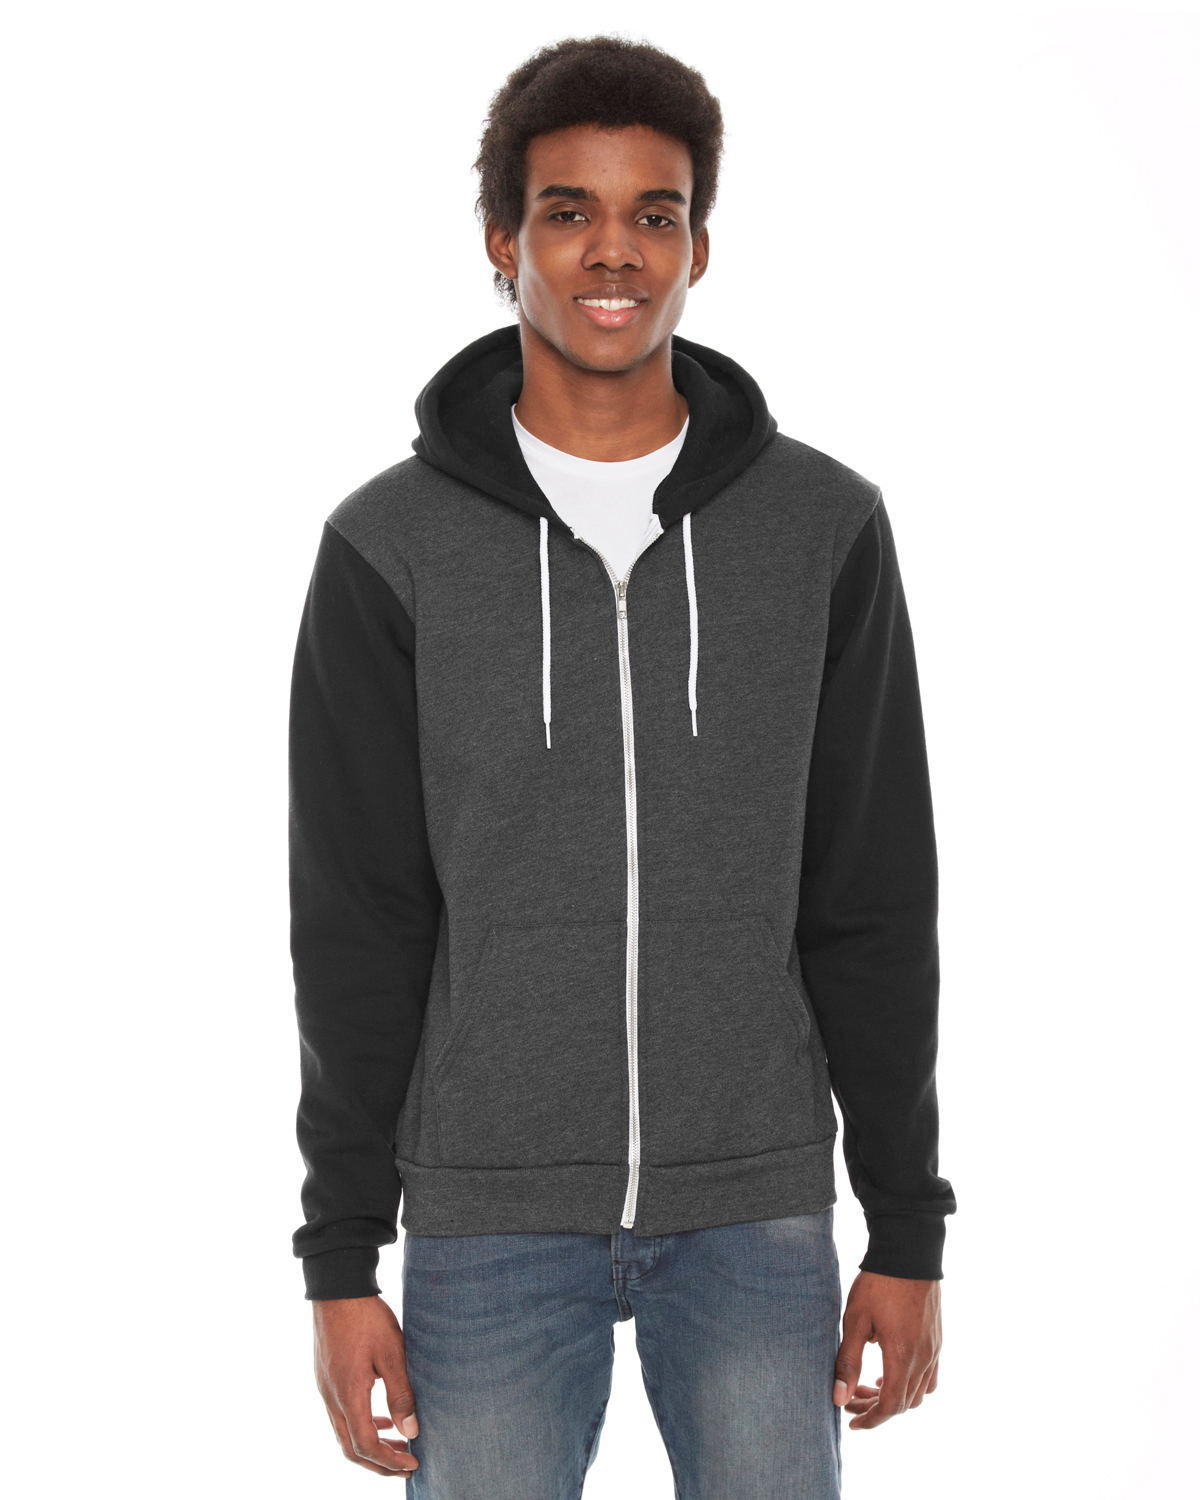 click to view Dk Hth Gry/ Blk